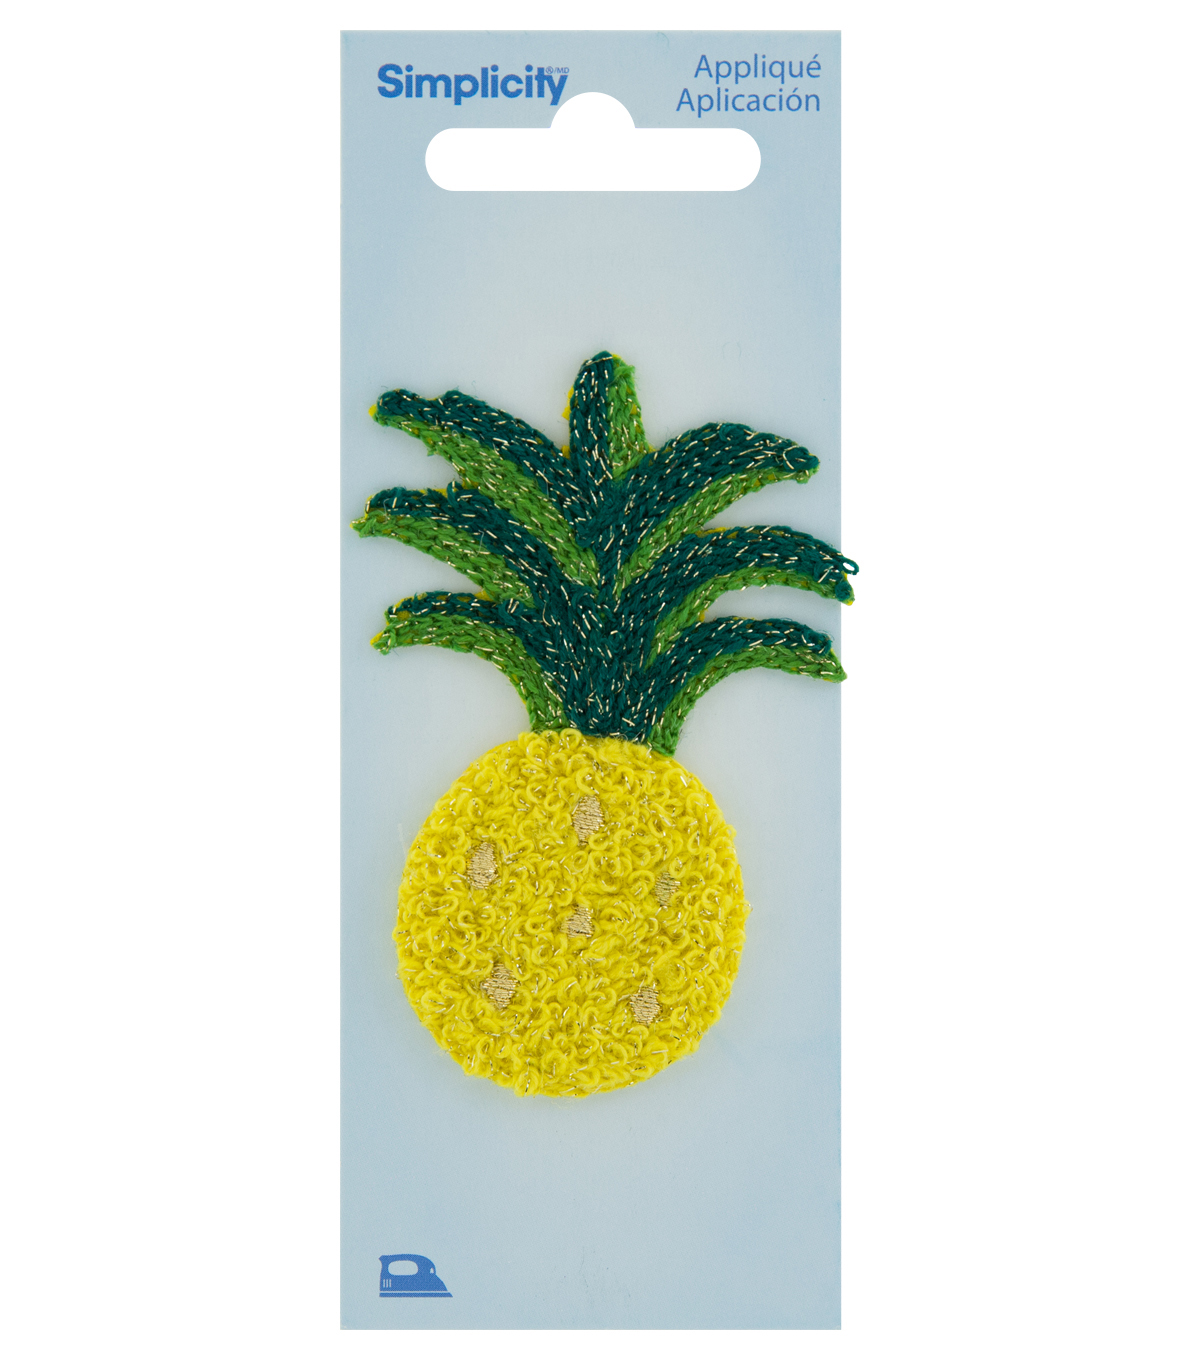 Simplicity Pineapple with Green Leaves Iron-on Applique